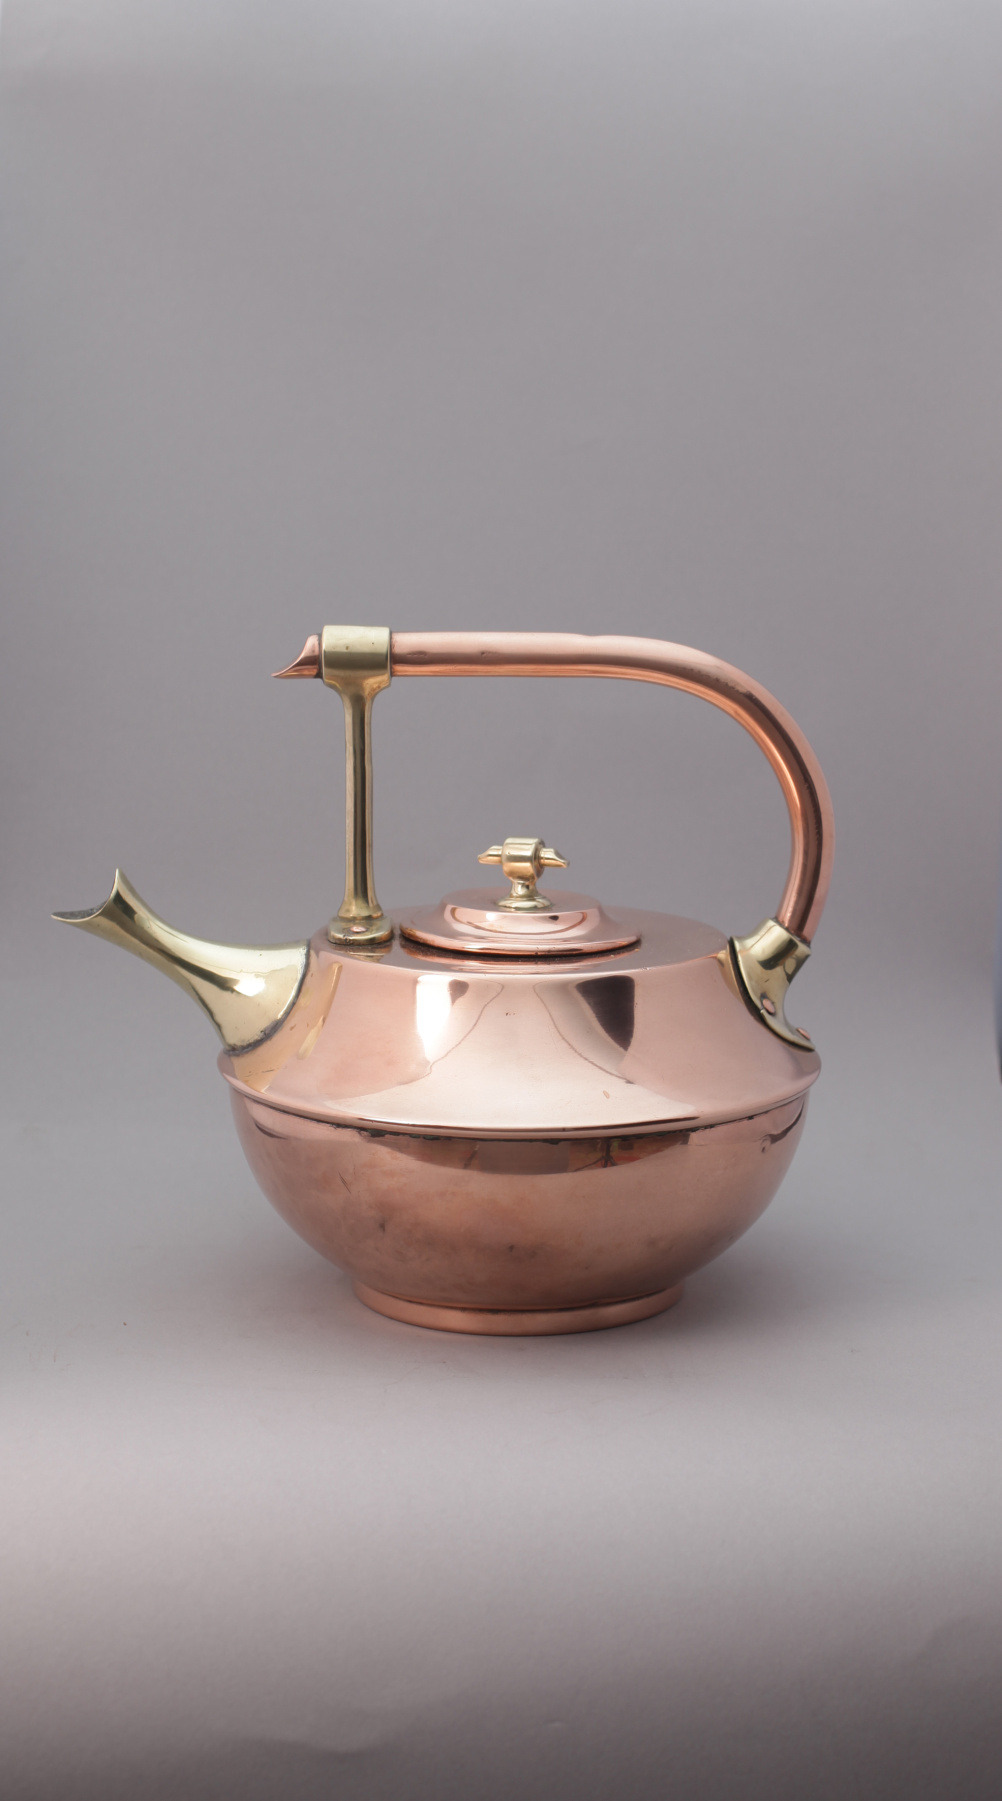 Christopher Dresser (1834-1904) Unknown maker. Kettle, c. 1885. Copper and brass